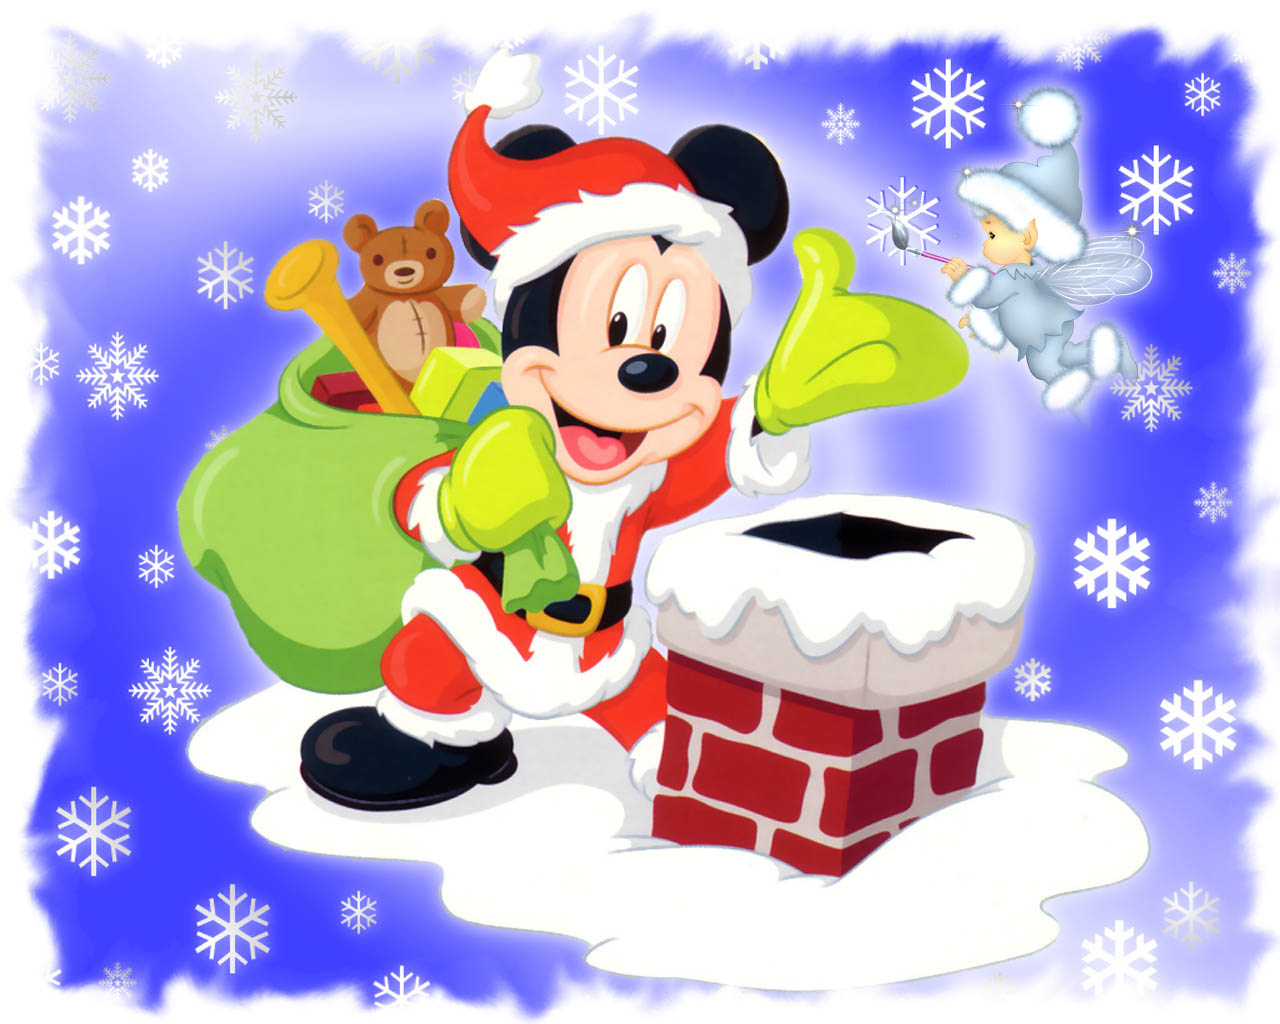 Mickey Mouse Santa 1151.15 Kb